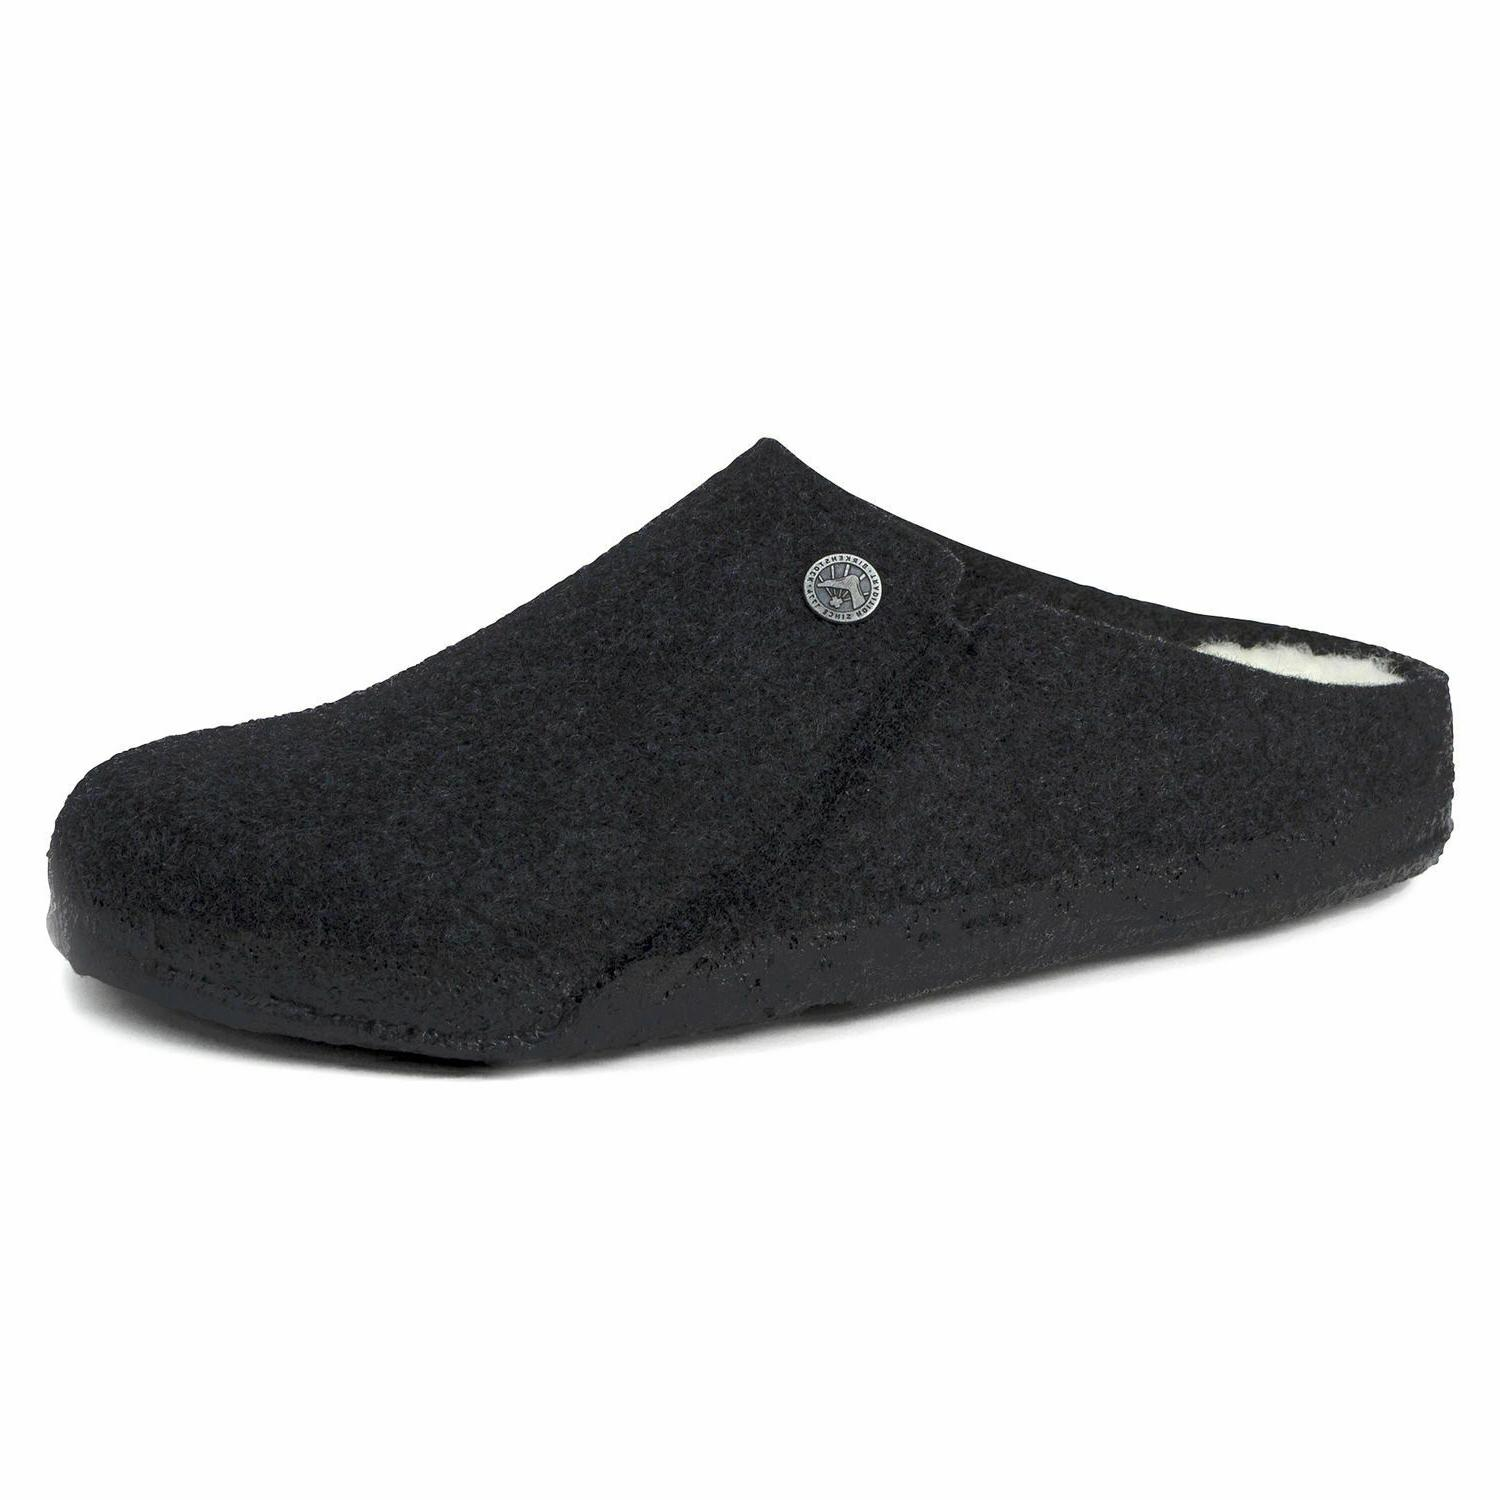 zermatt rivet anthracite wool felt slipper new